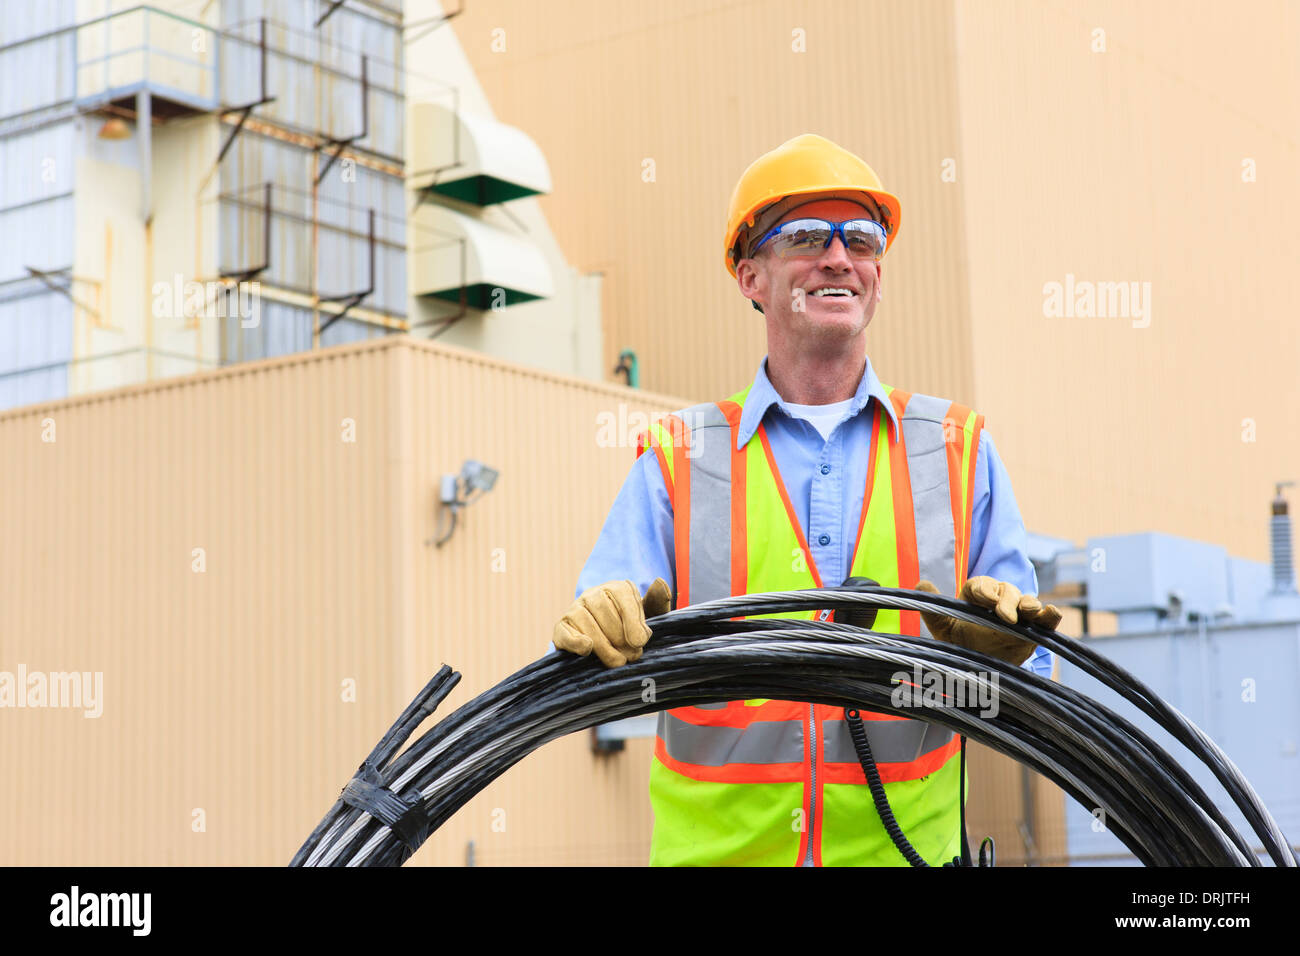 Engineer at electric power plant carrying coil of wire at storage area - Stock Image